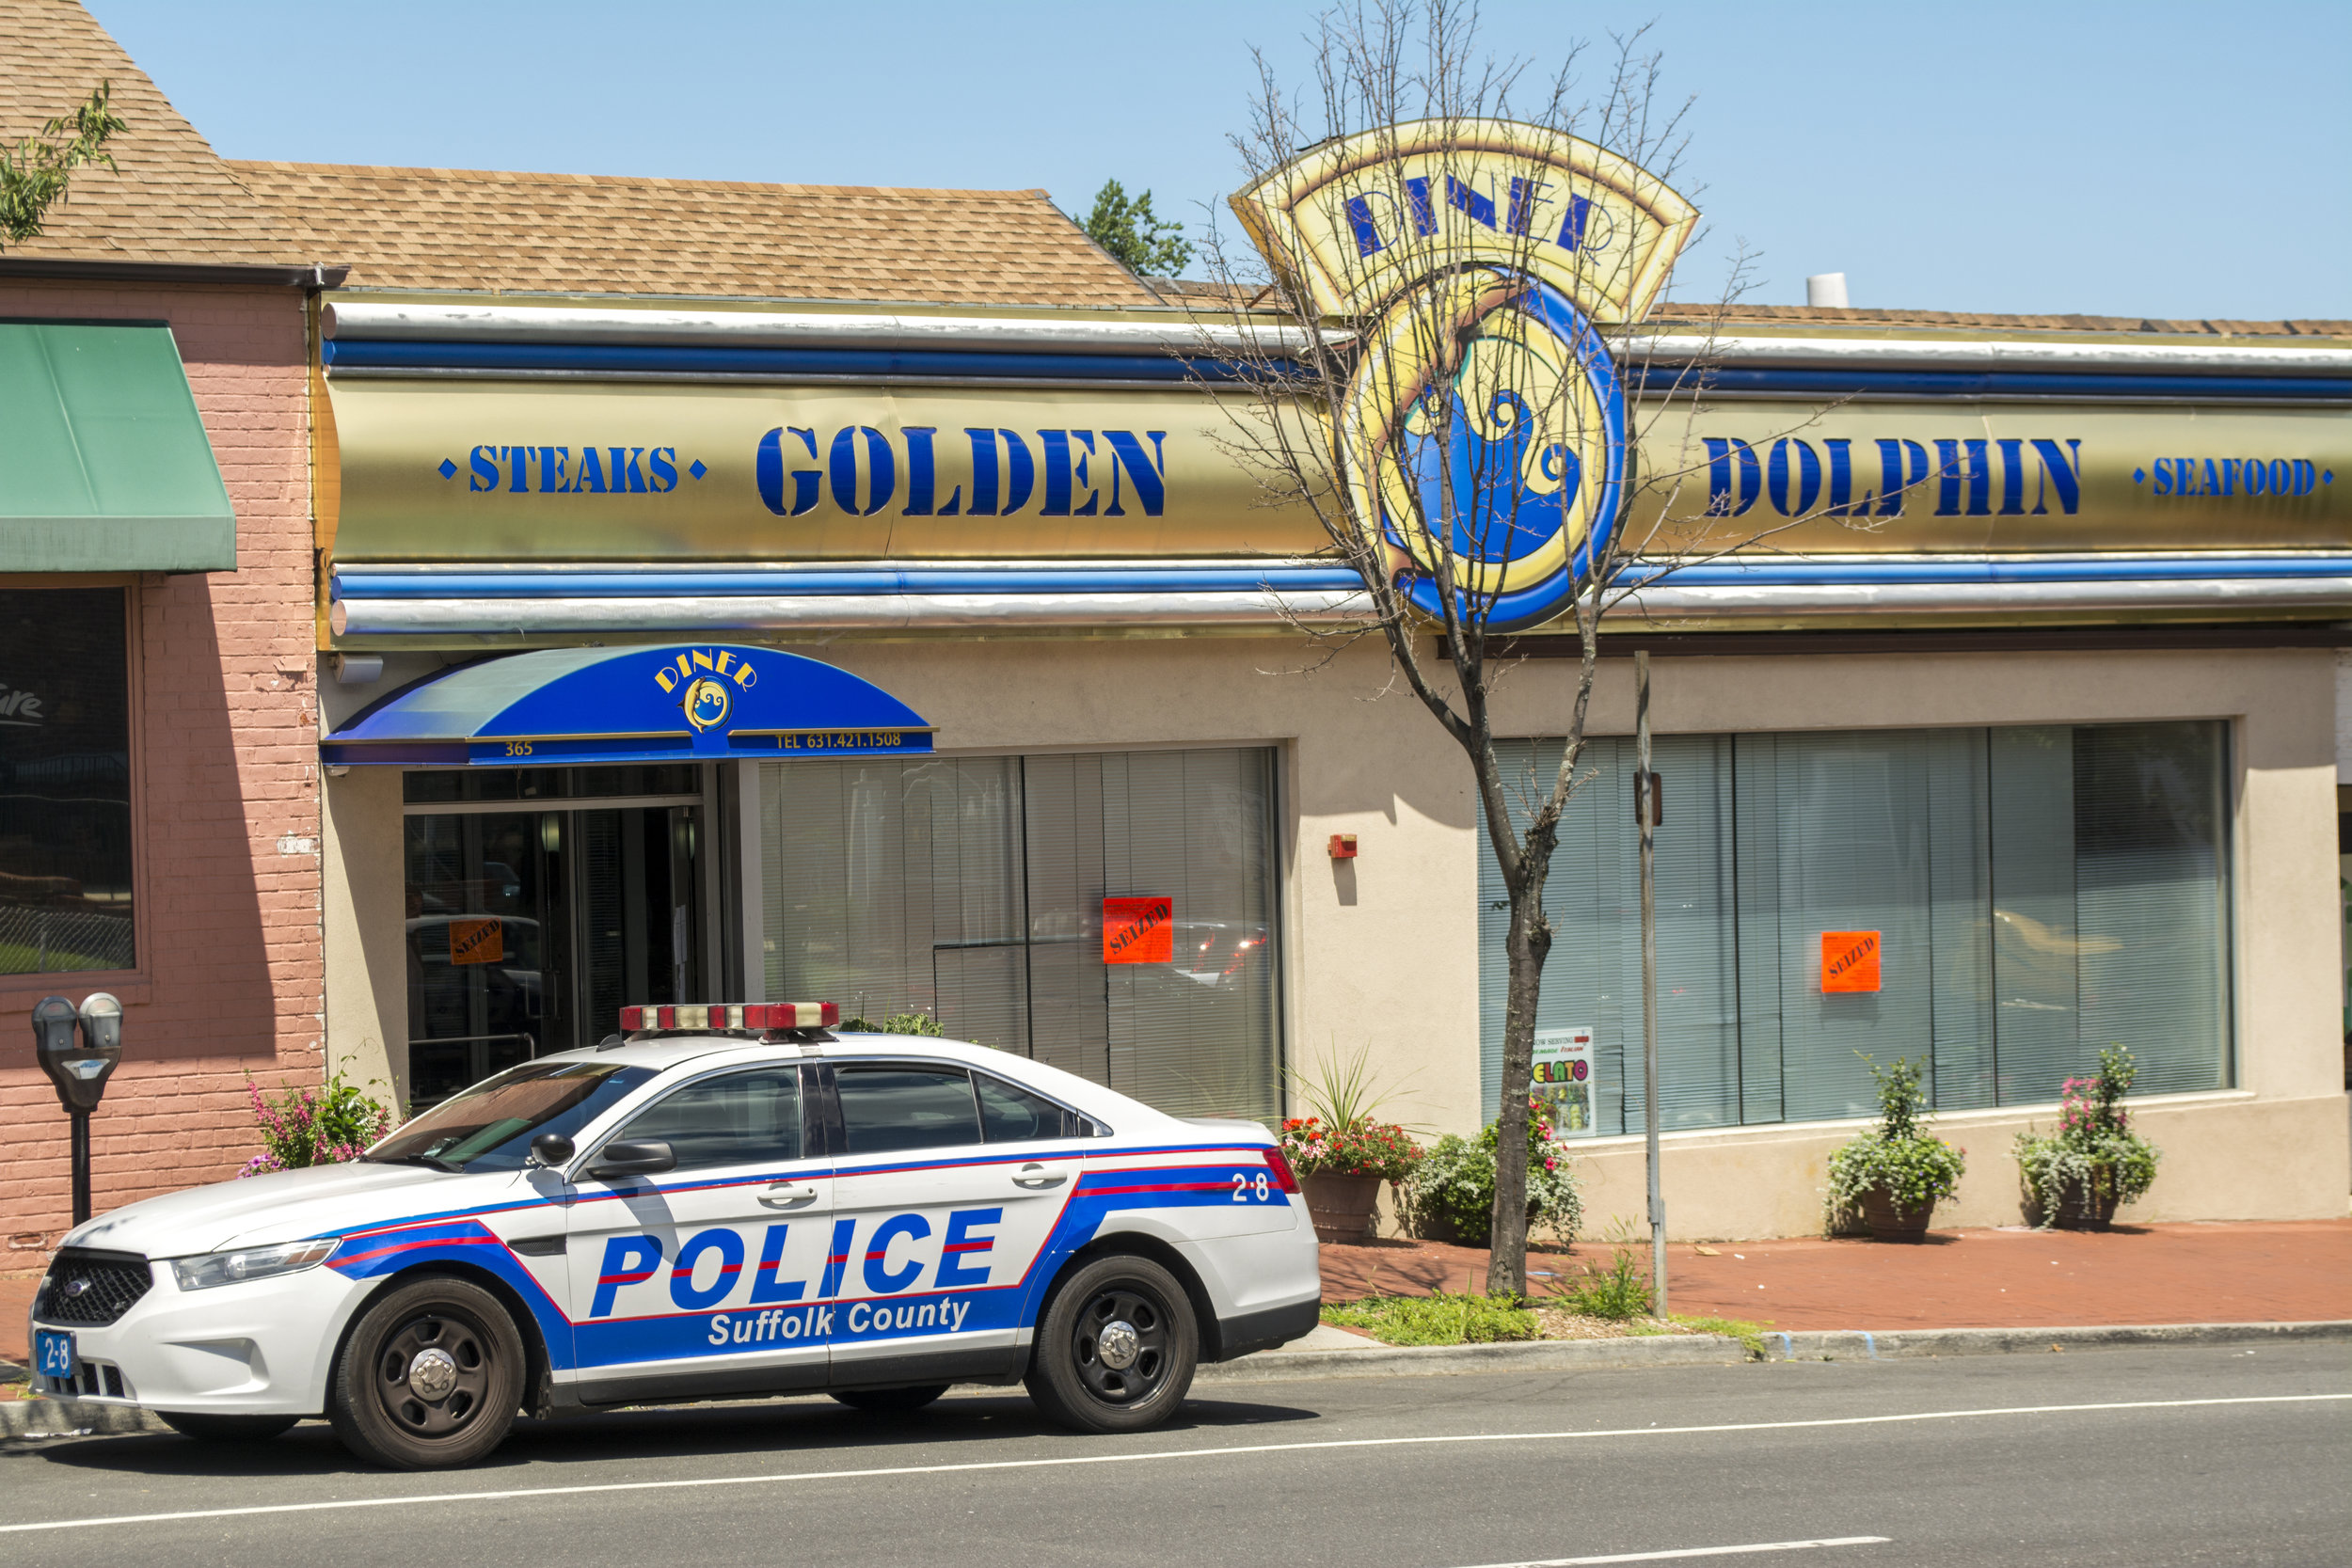 A Suffolk police officer's vehicle is pictured outside the Golden Dolphin diner Wednesday afternoon after it was seized by the state over apparent unpaid taxes.   Photo by  Long Islander News photo/Paul Shapiro